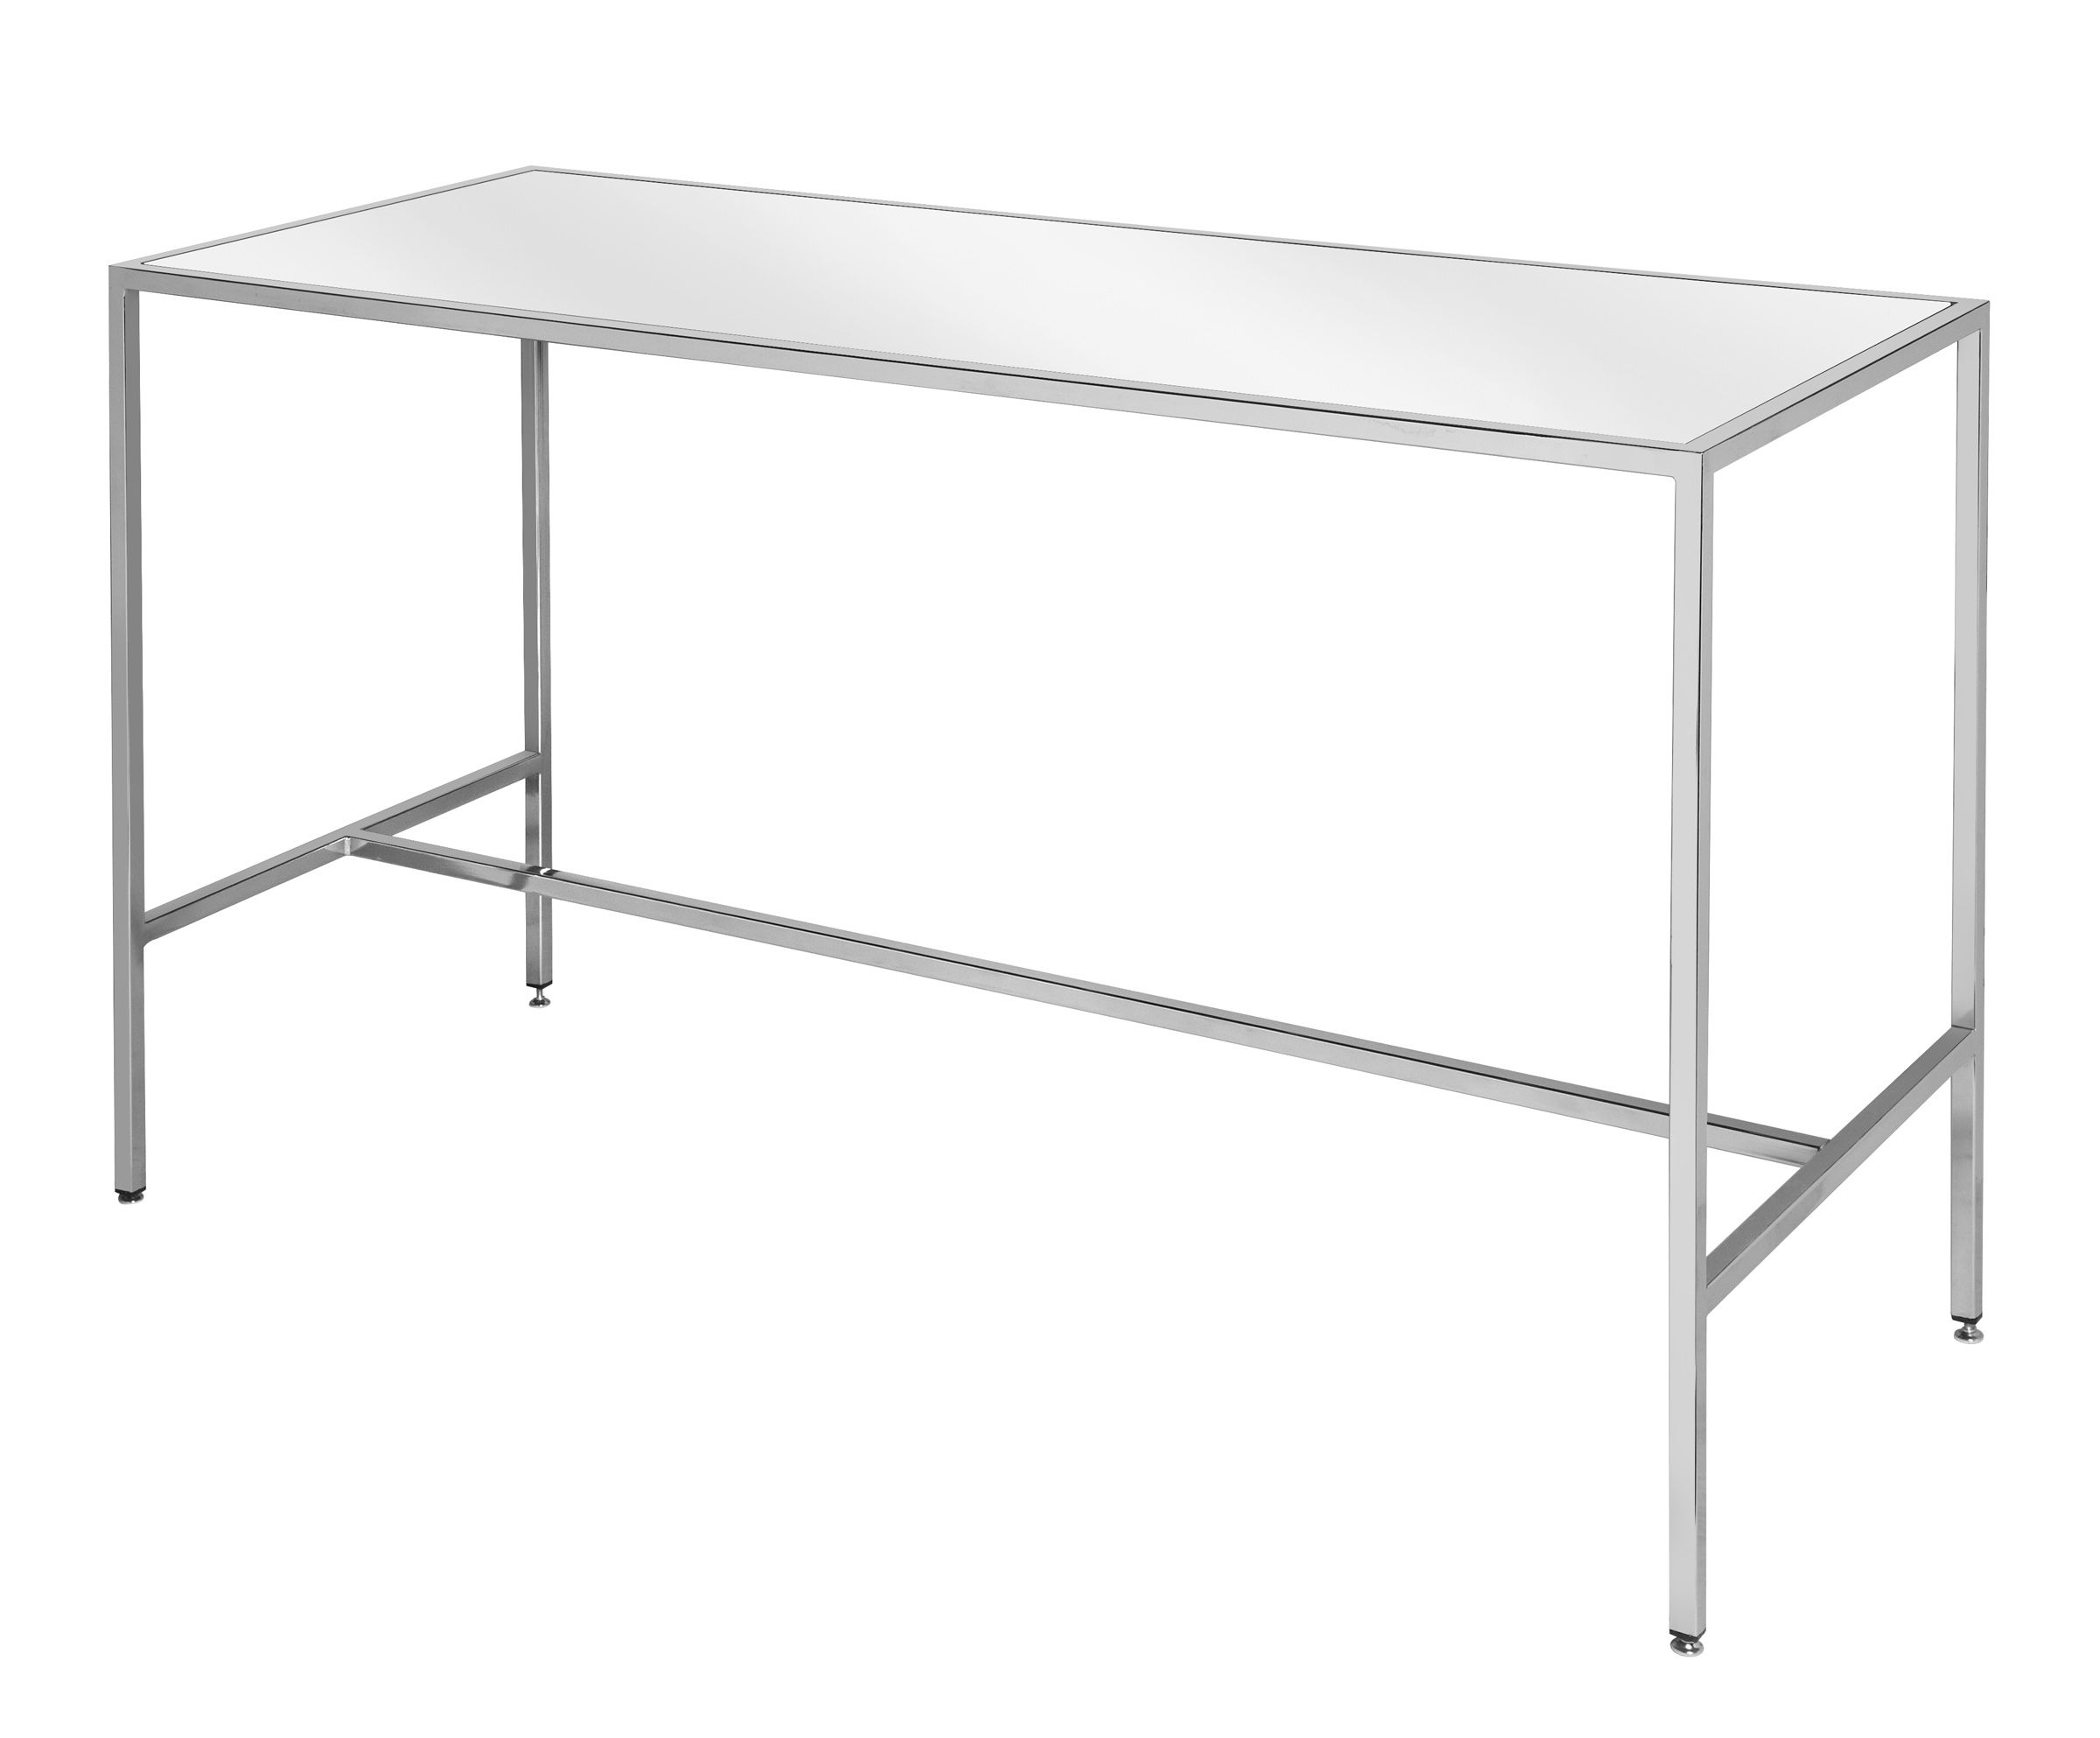 White Plexi munal Table Picked by Christine Realubit